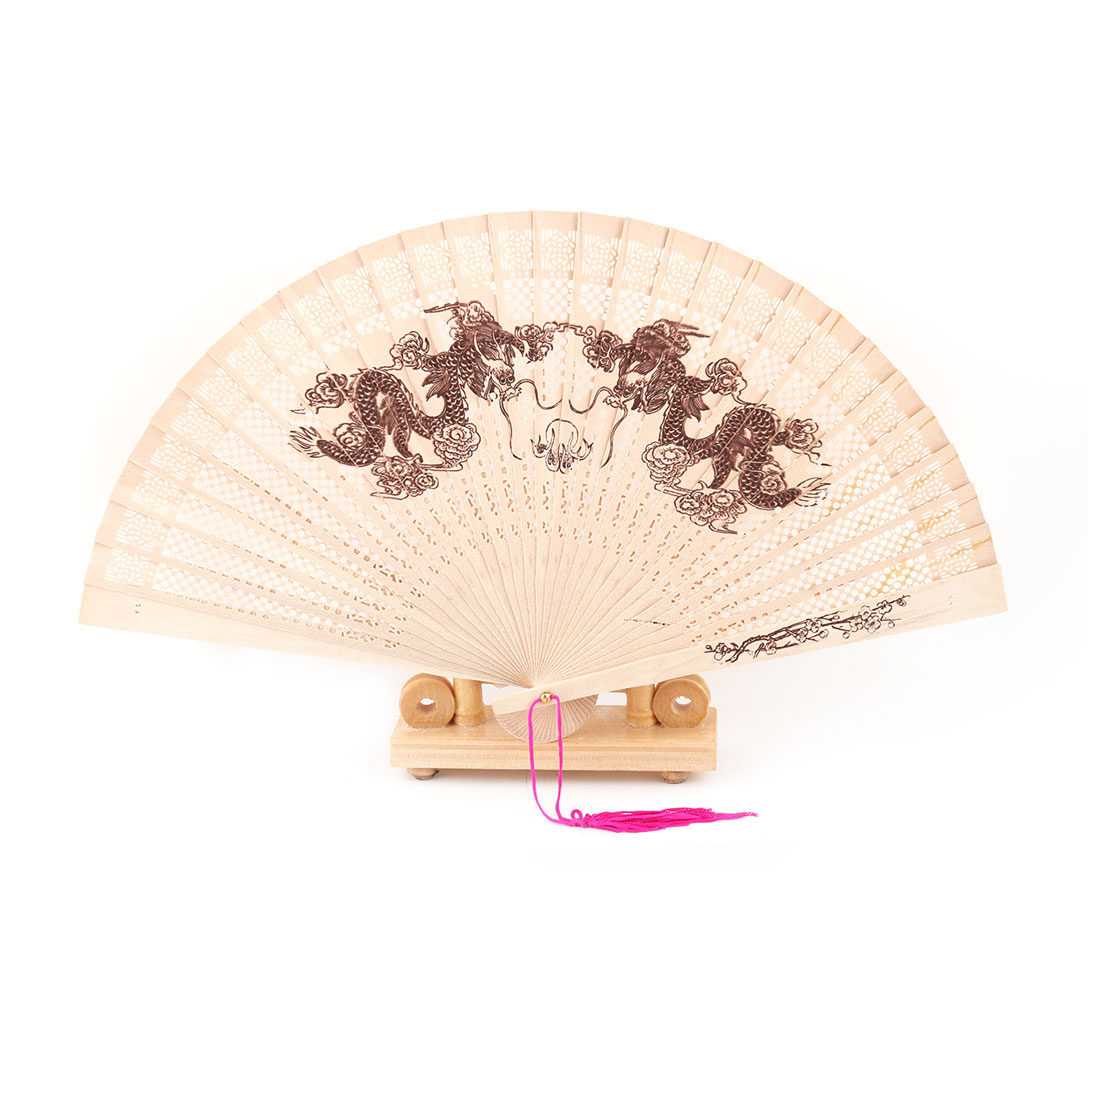 Bamboo Dragon Pattern Tassel Decor Folding Hand Fan Display Holder Beige 2 in 1